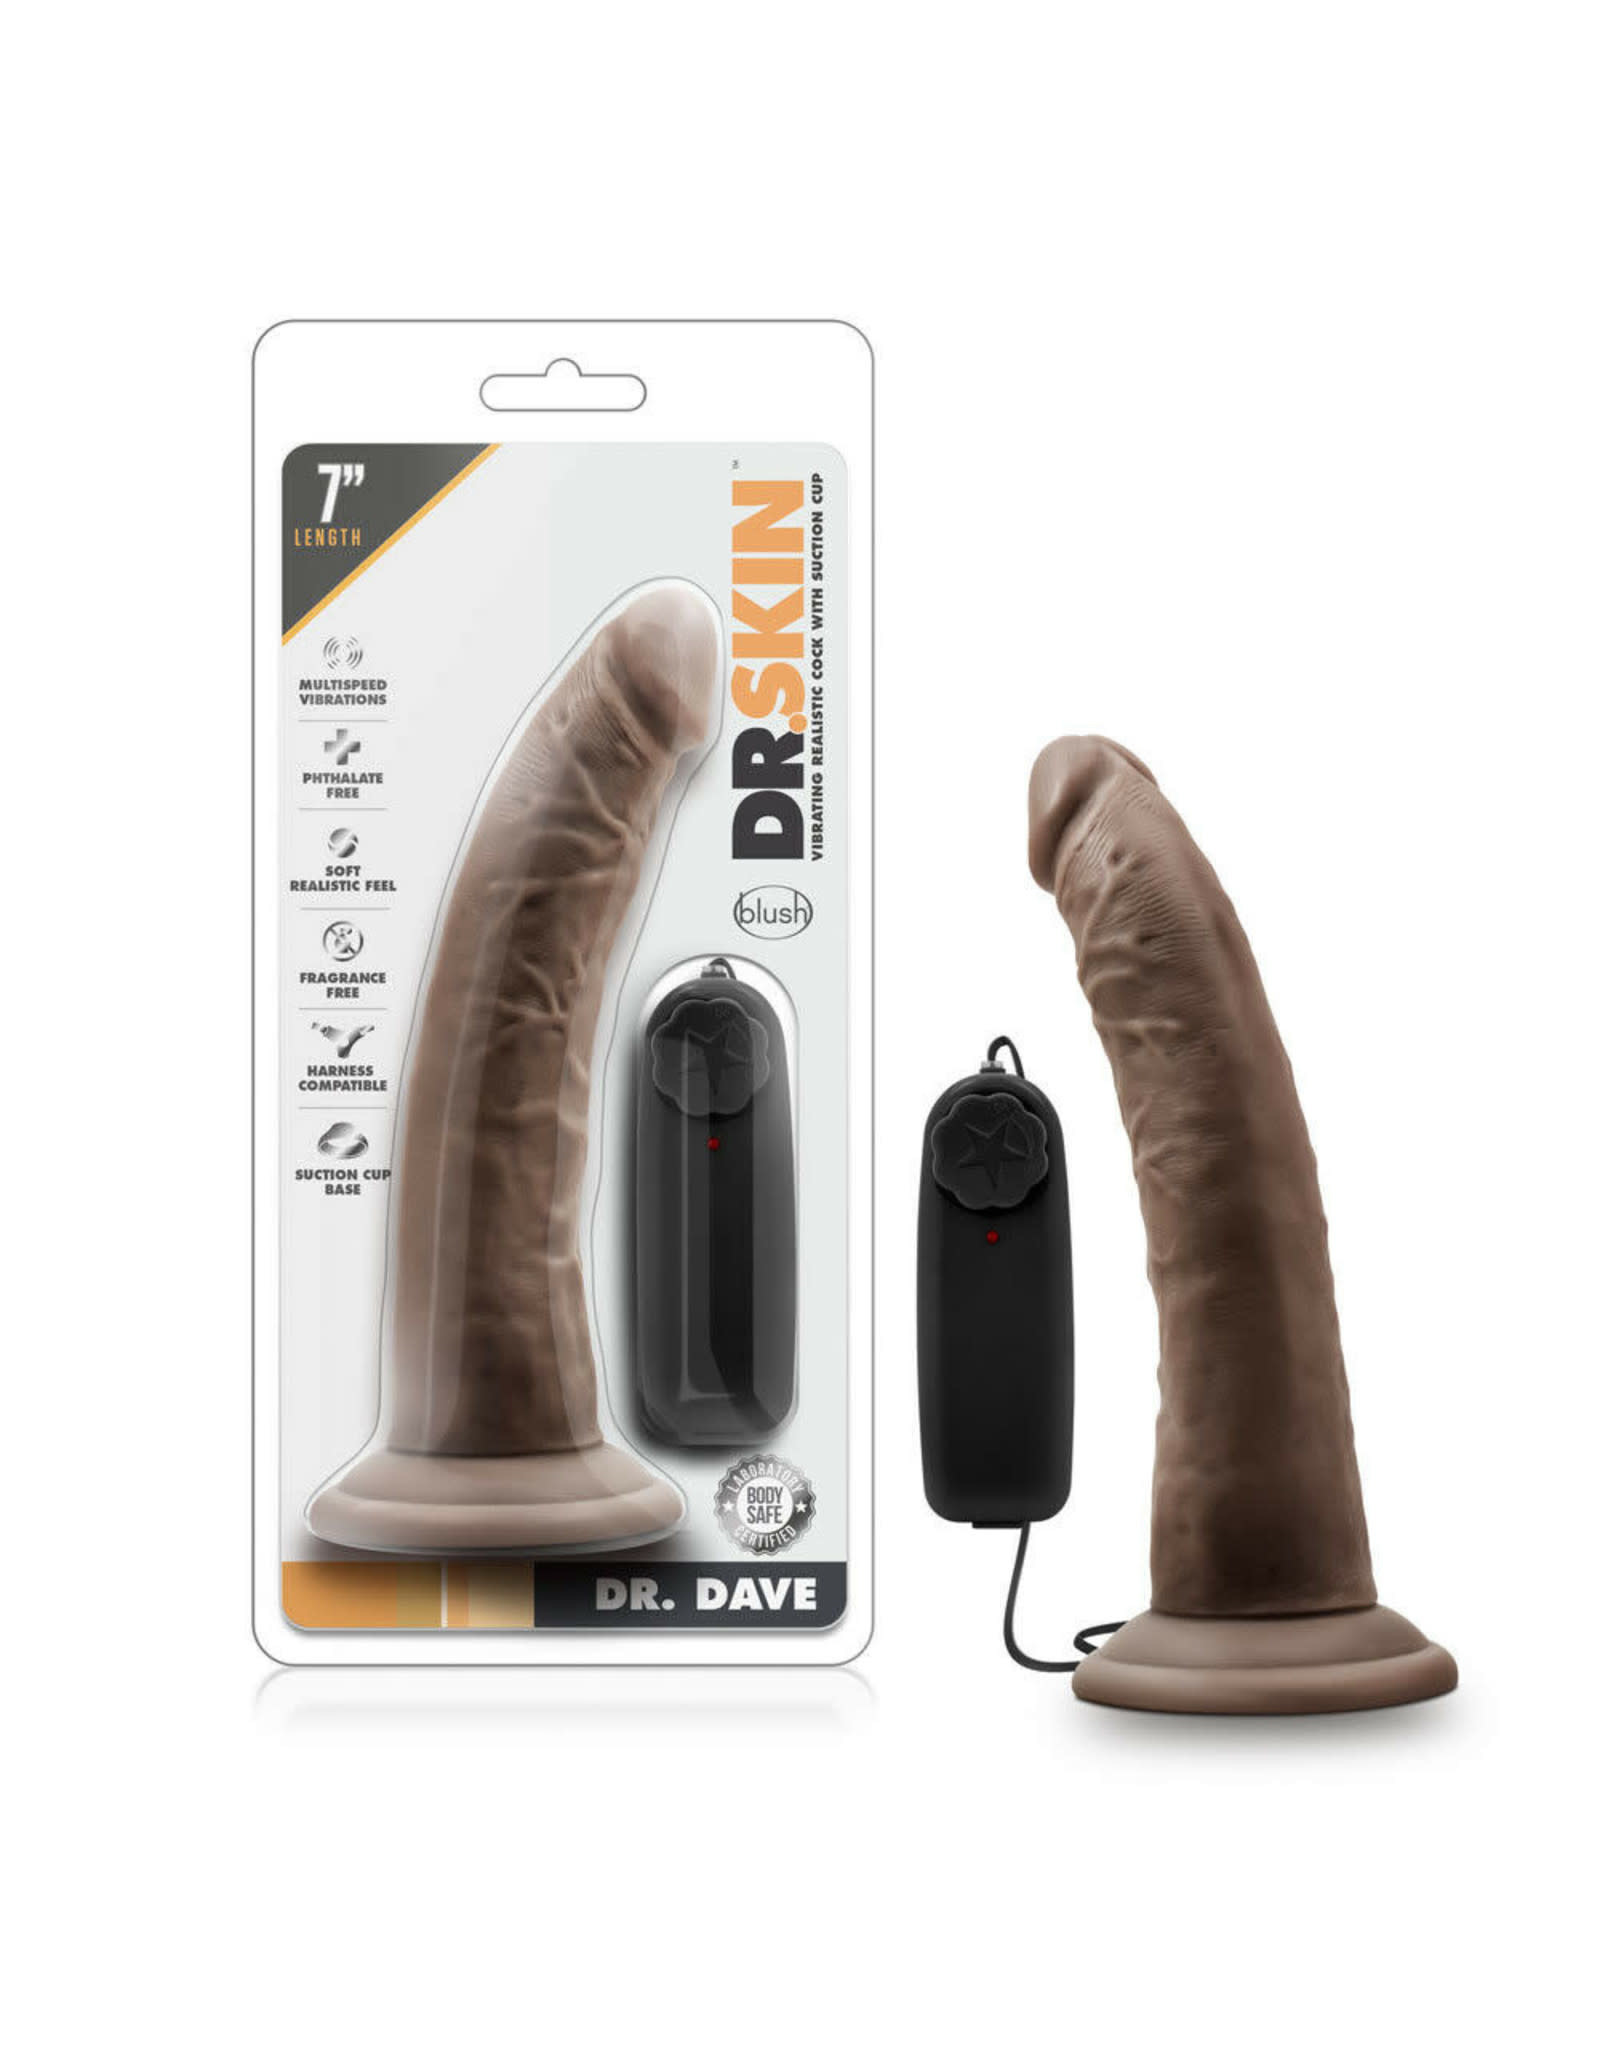 """DR. SKIN DR. SKIN - DR. DAVE - 7"""" VIBRATING COCK WITH SUCTION CUP - CHOCOLATE"""